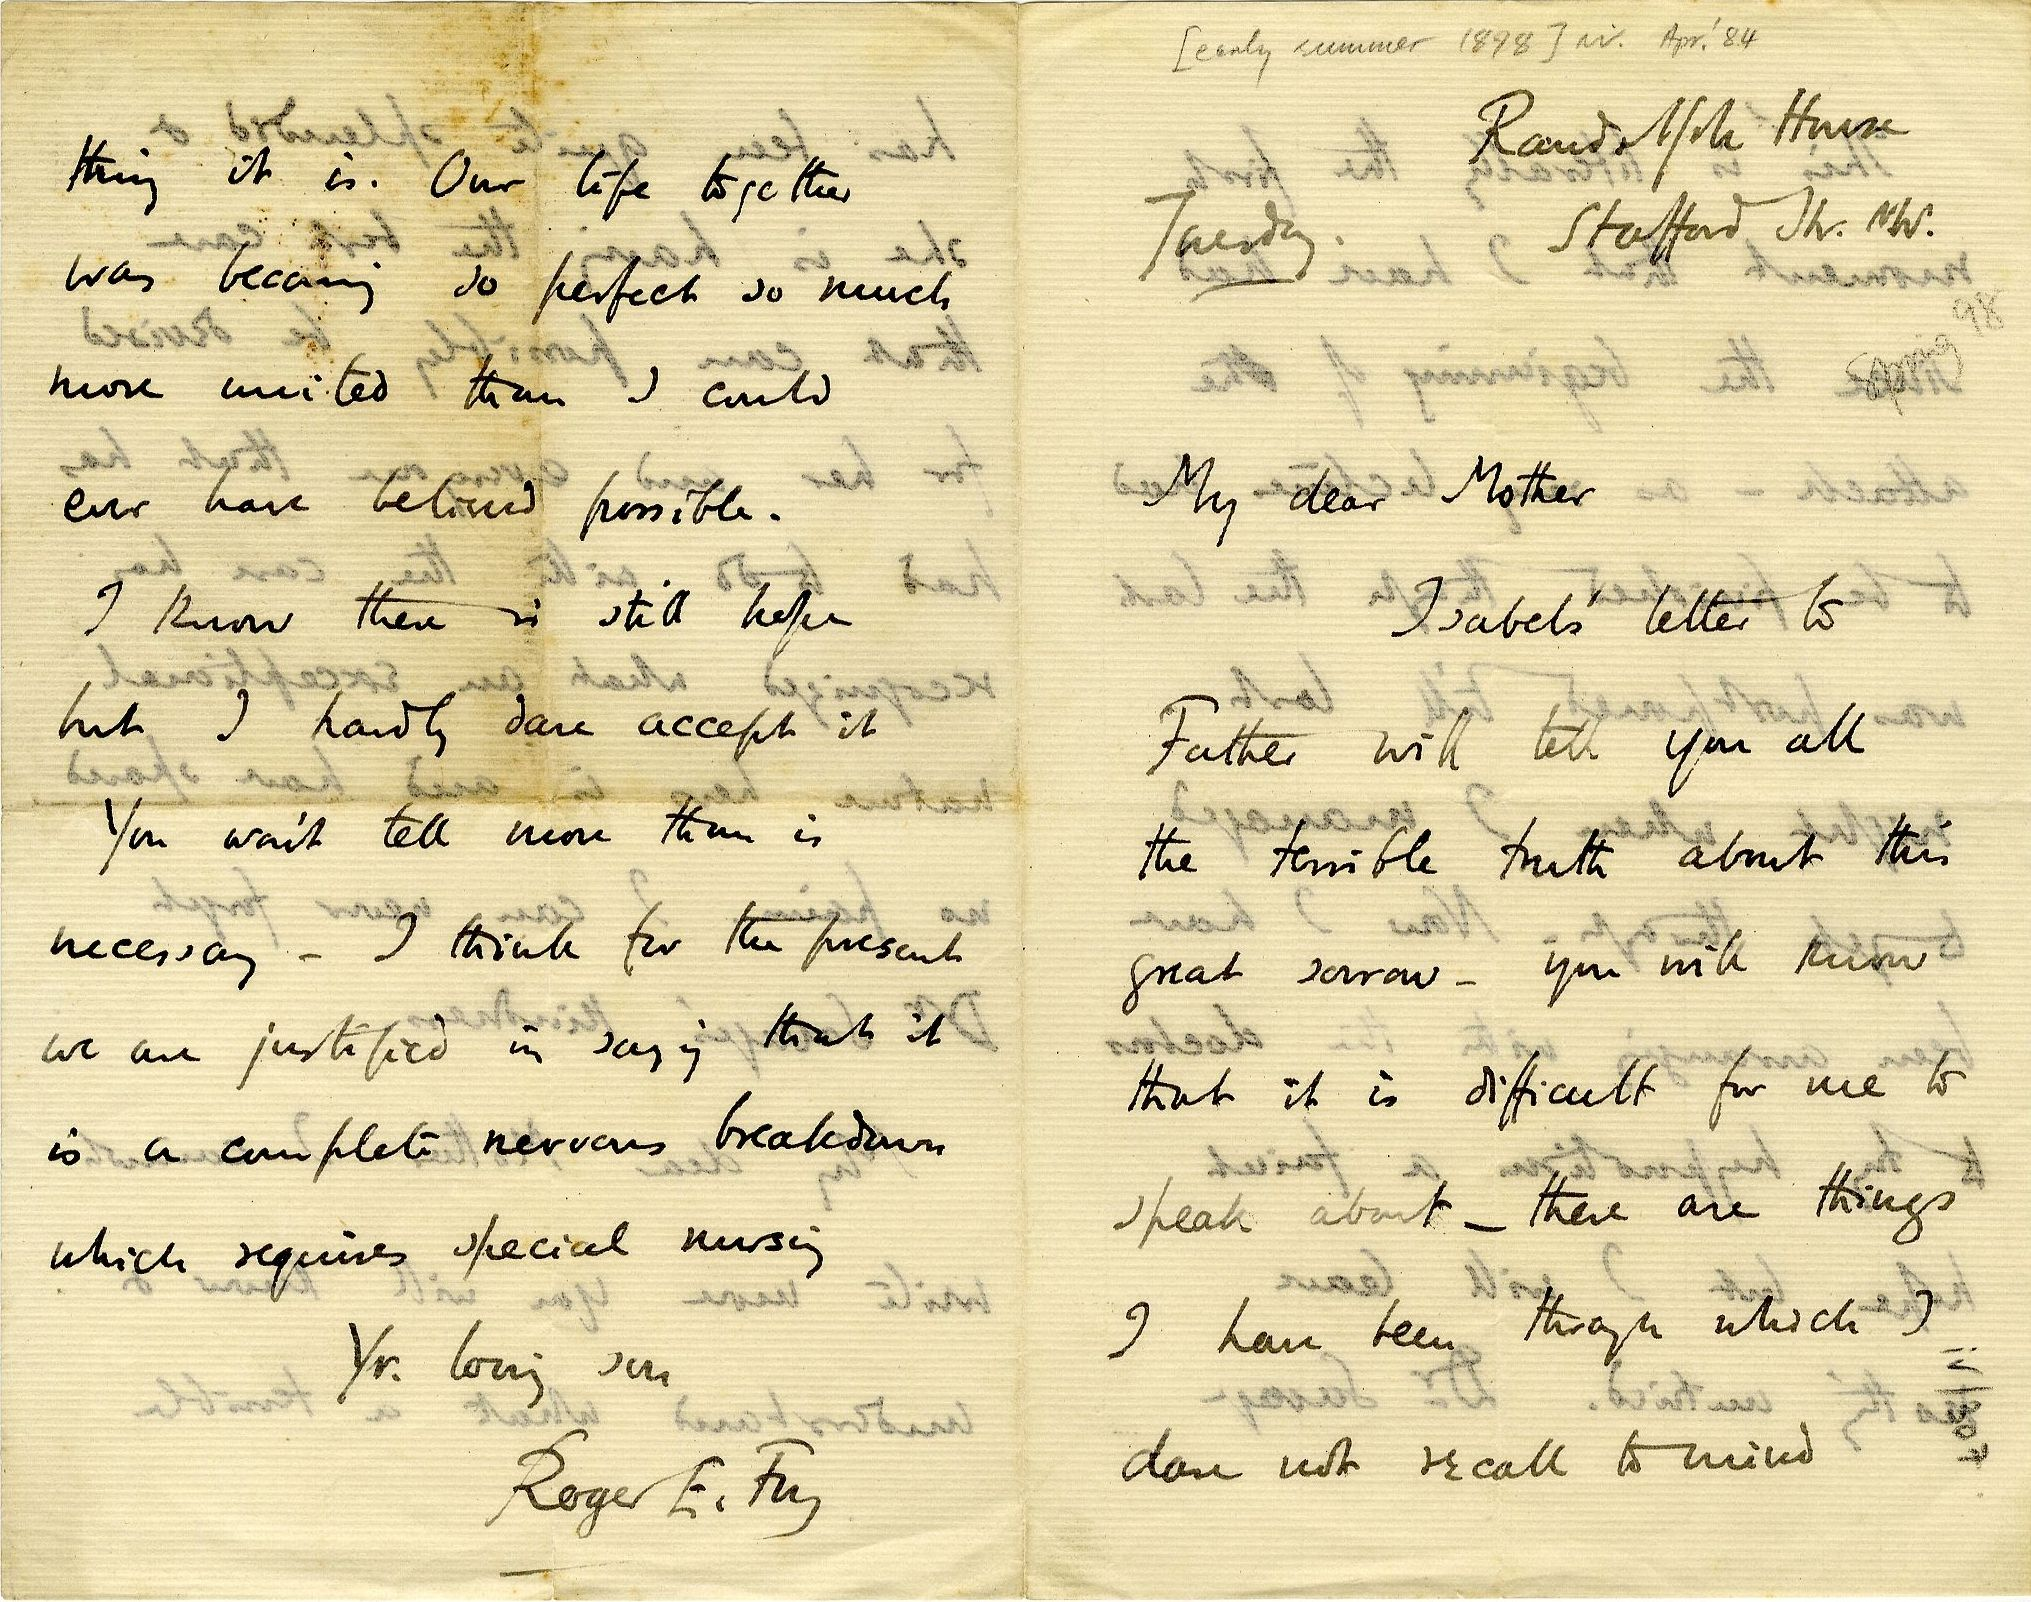 Letter from Roger Fry to his mother, 1898, concerning Helen's nervous breakdown. [REF/3/57/32]